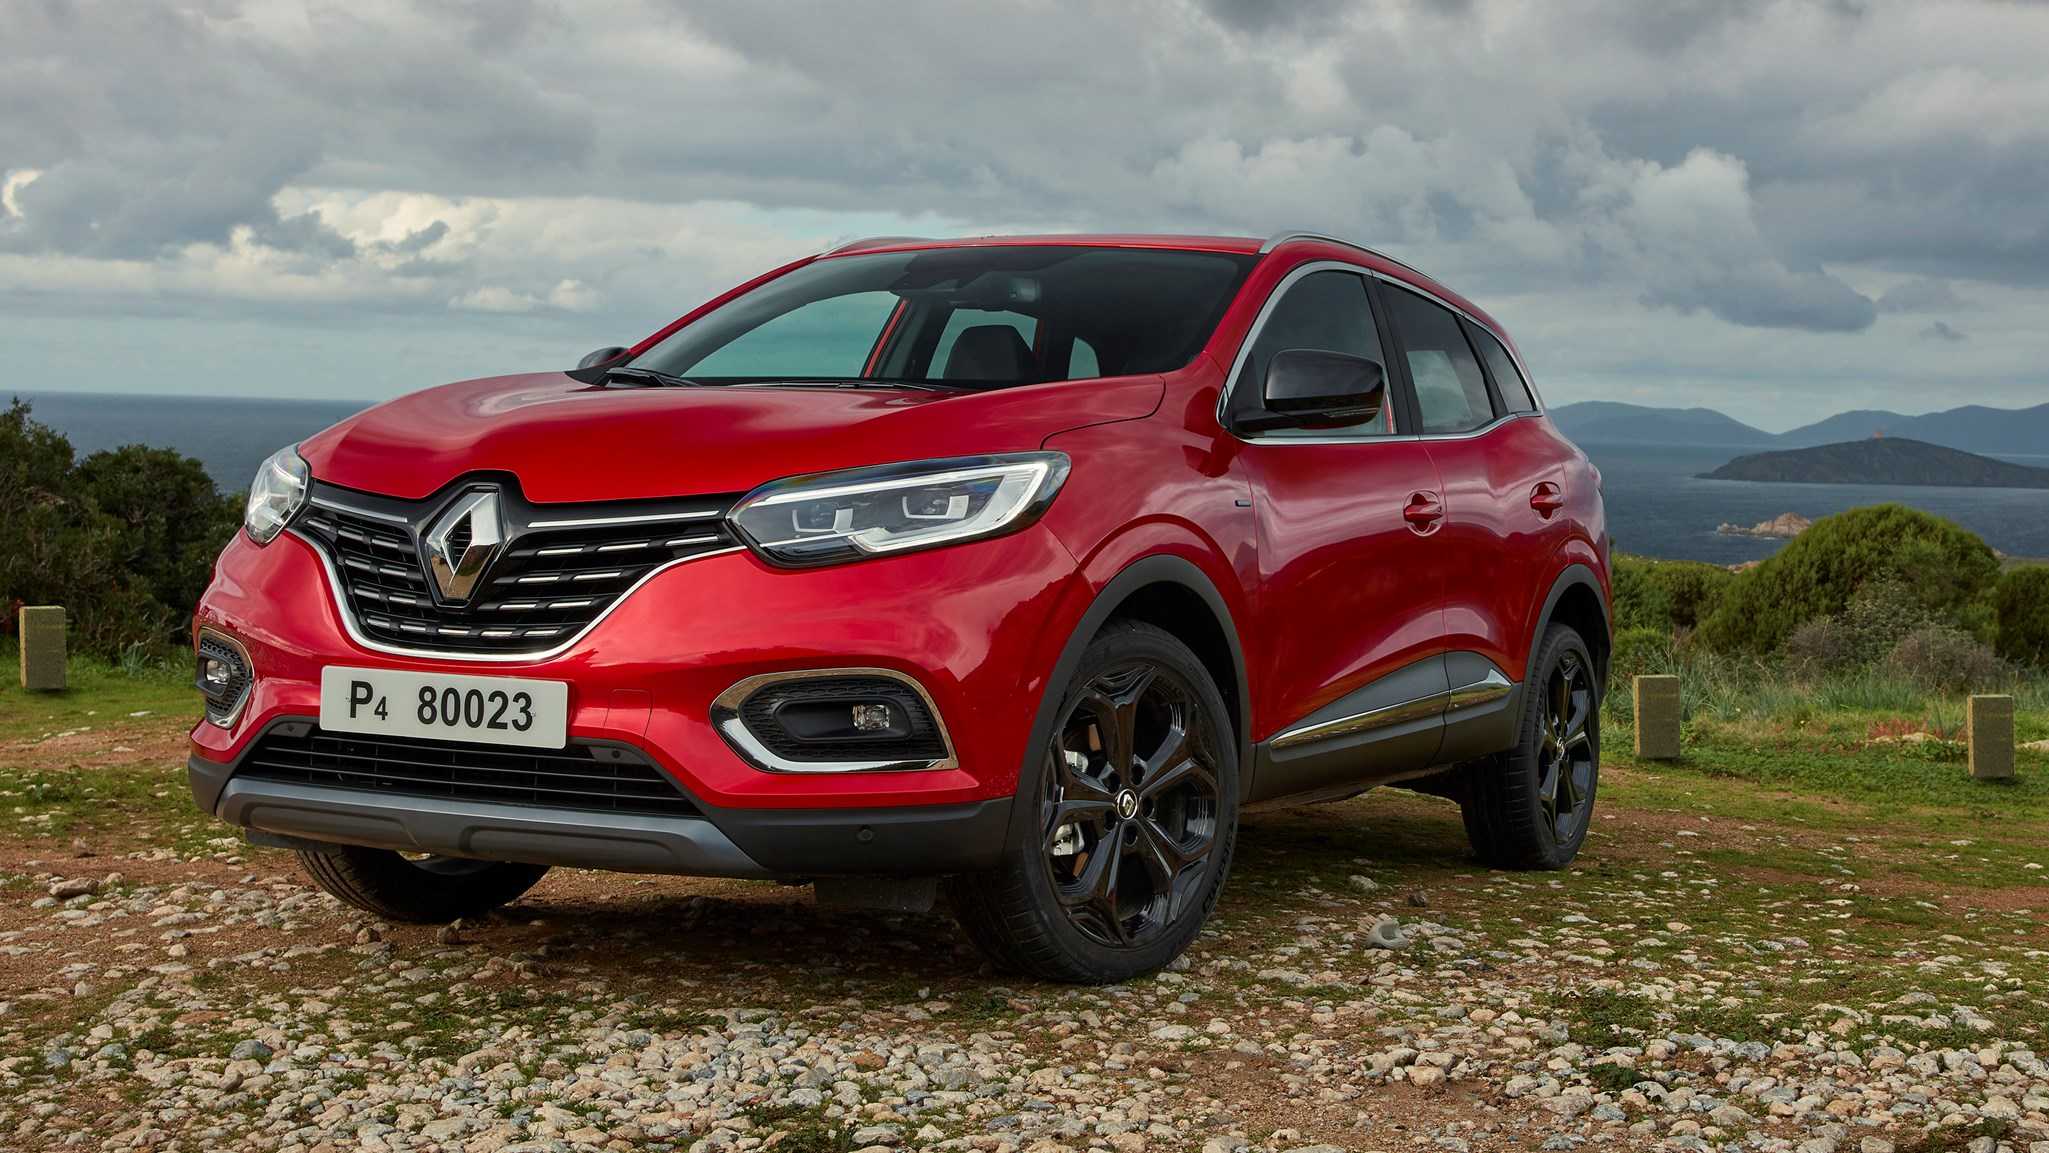 renault kadjar suv 2019 review blink and you 39 ll miss it. Black Bedroom Furniture Sets. Home Design Ideas